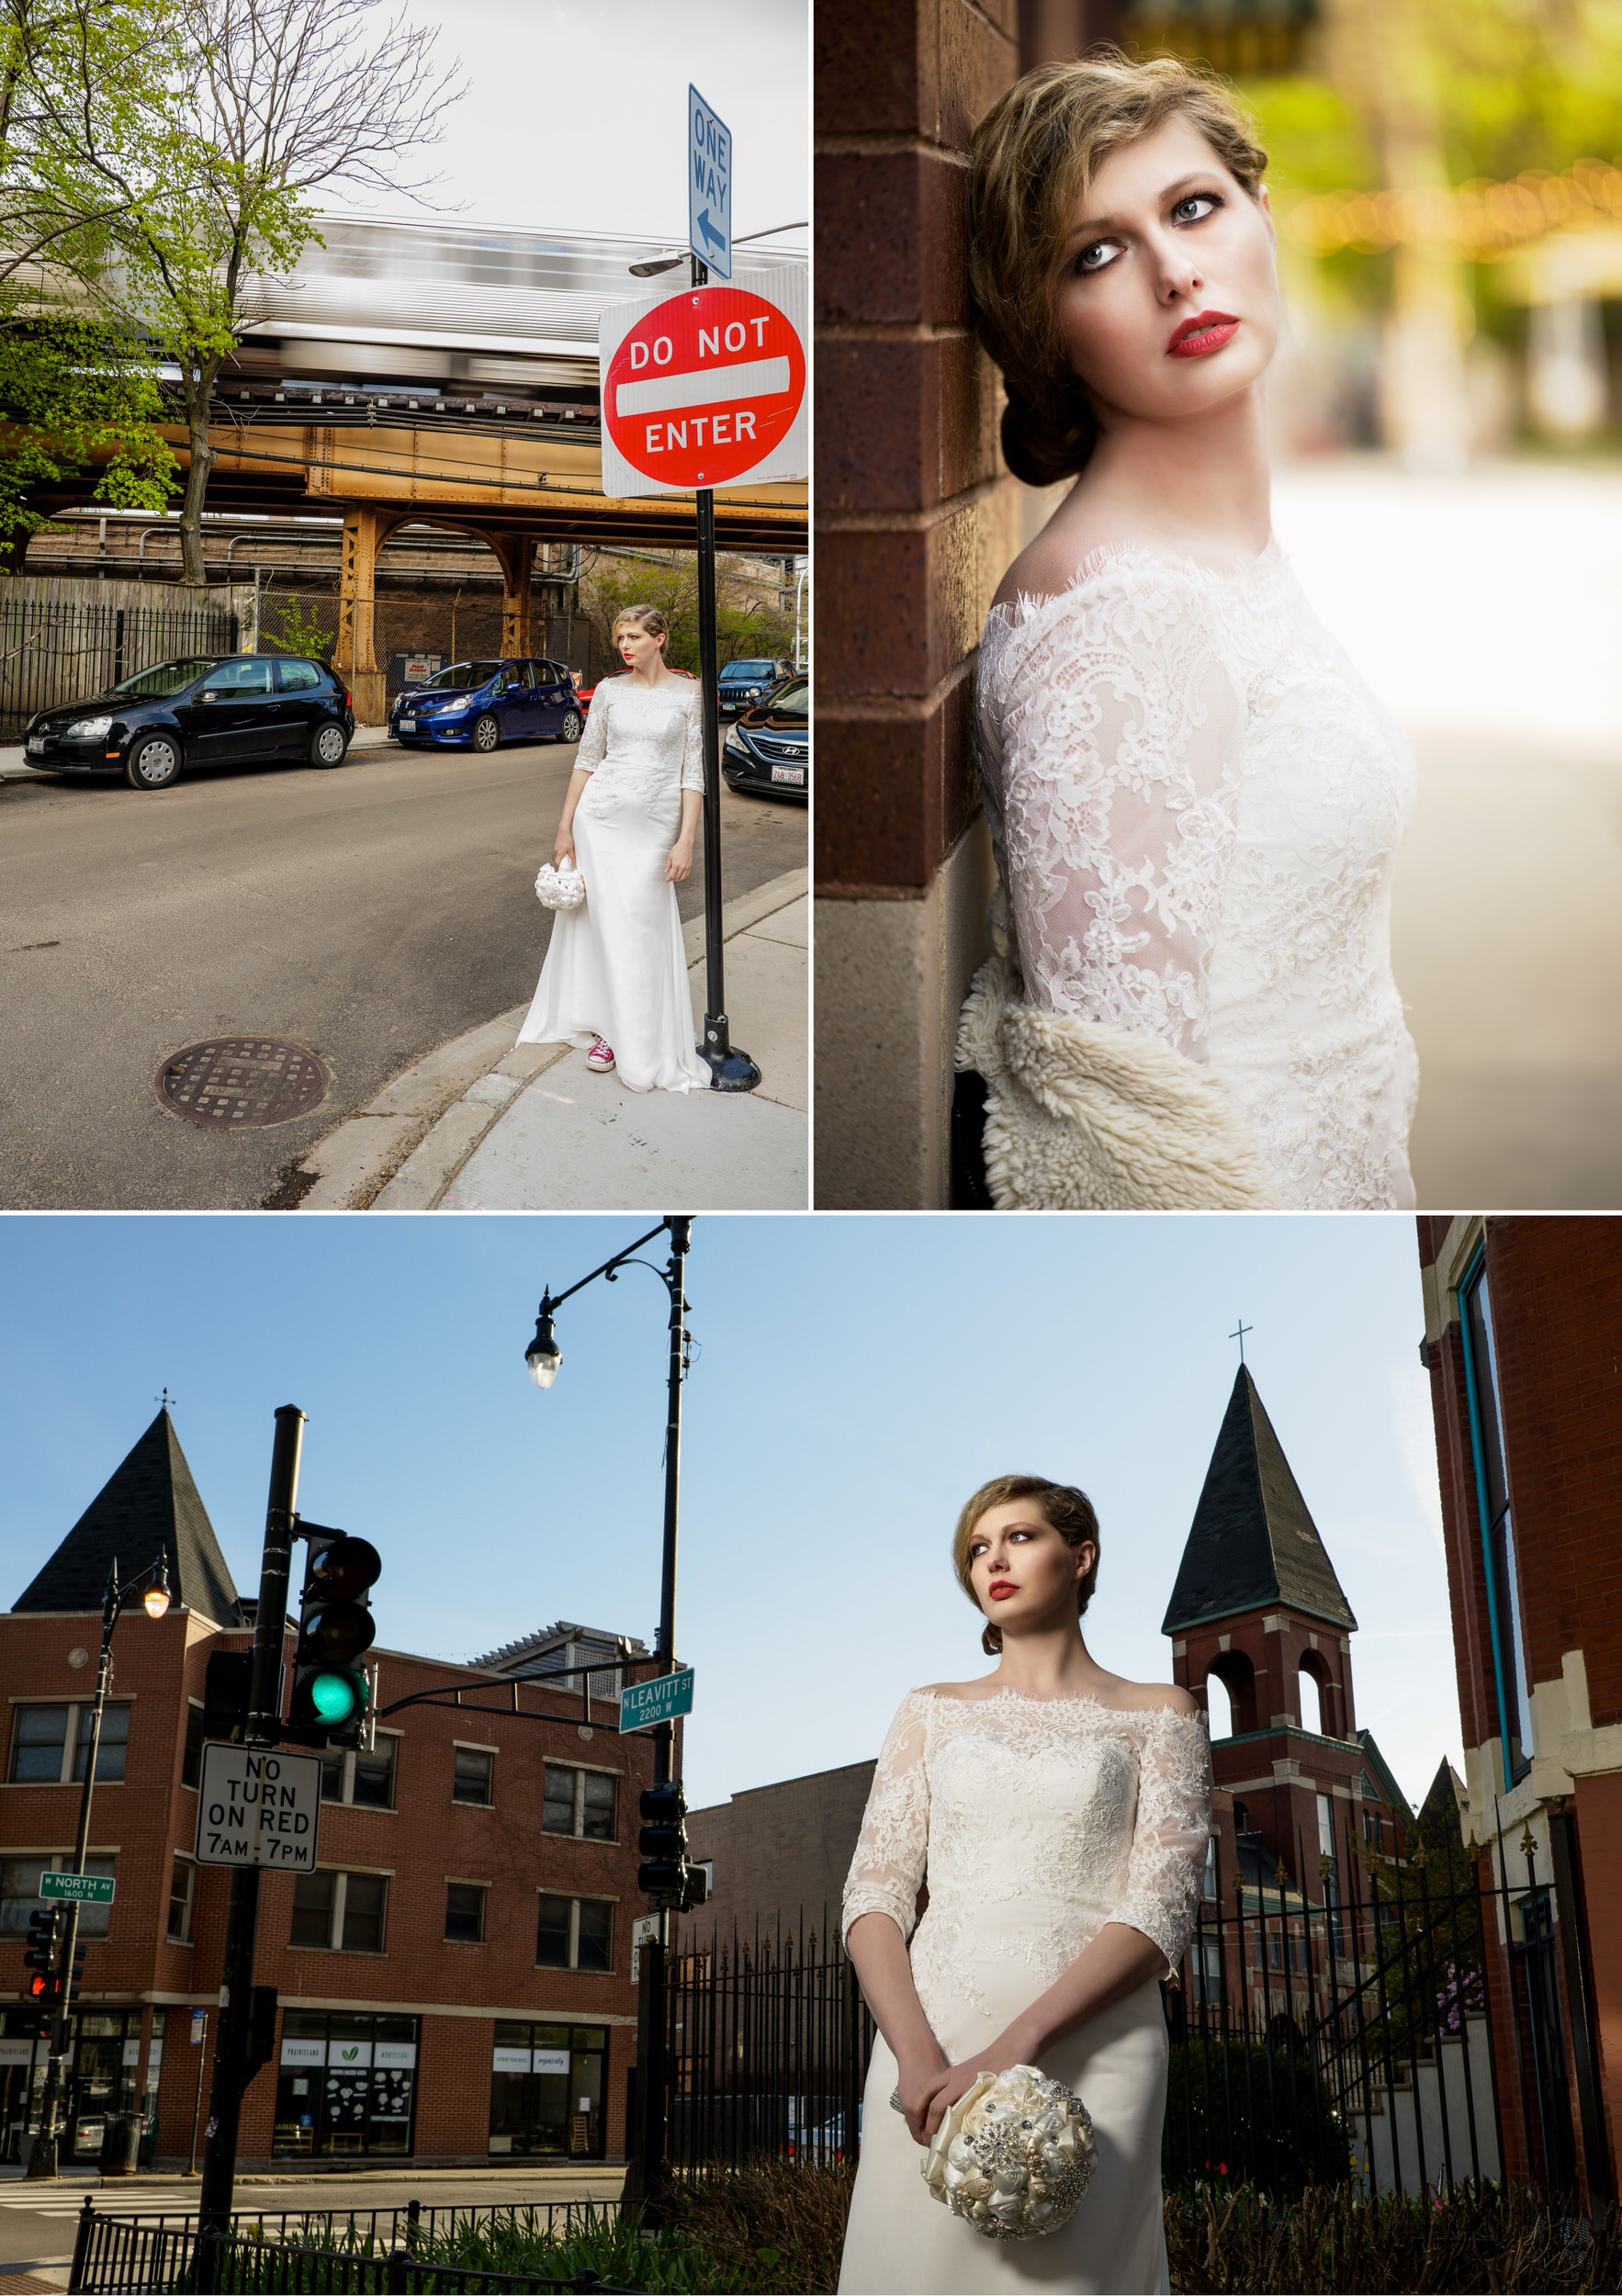 Urban bridal portraits on the streets of Chicago.